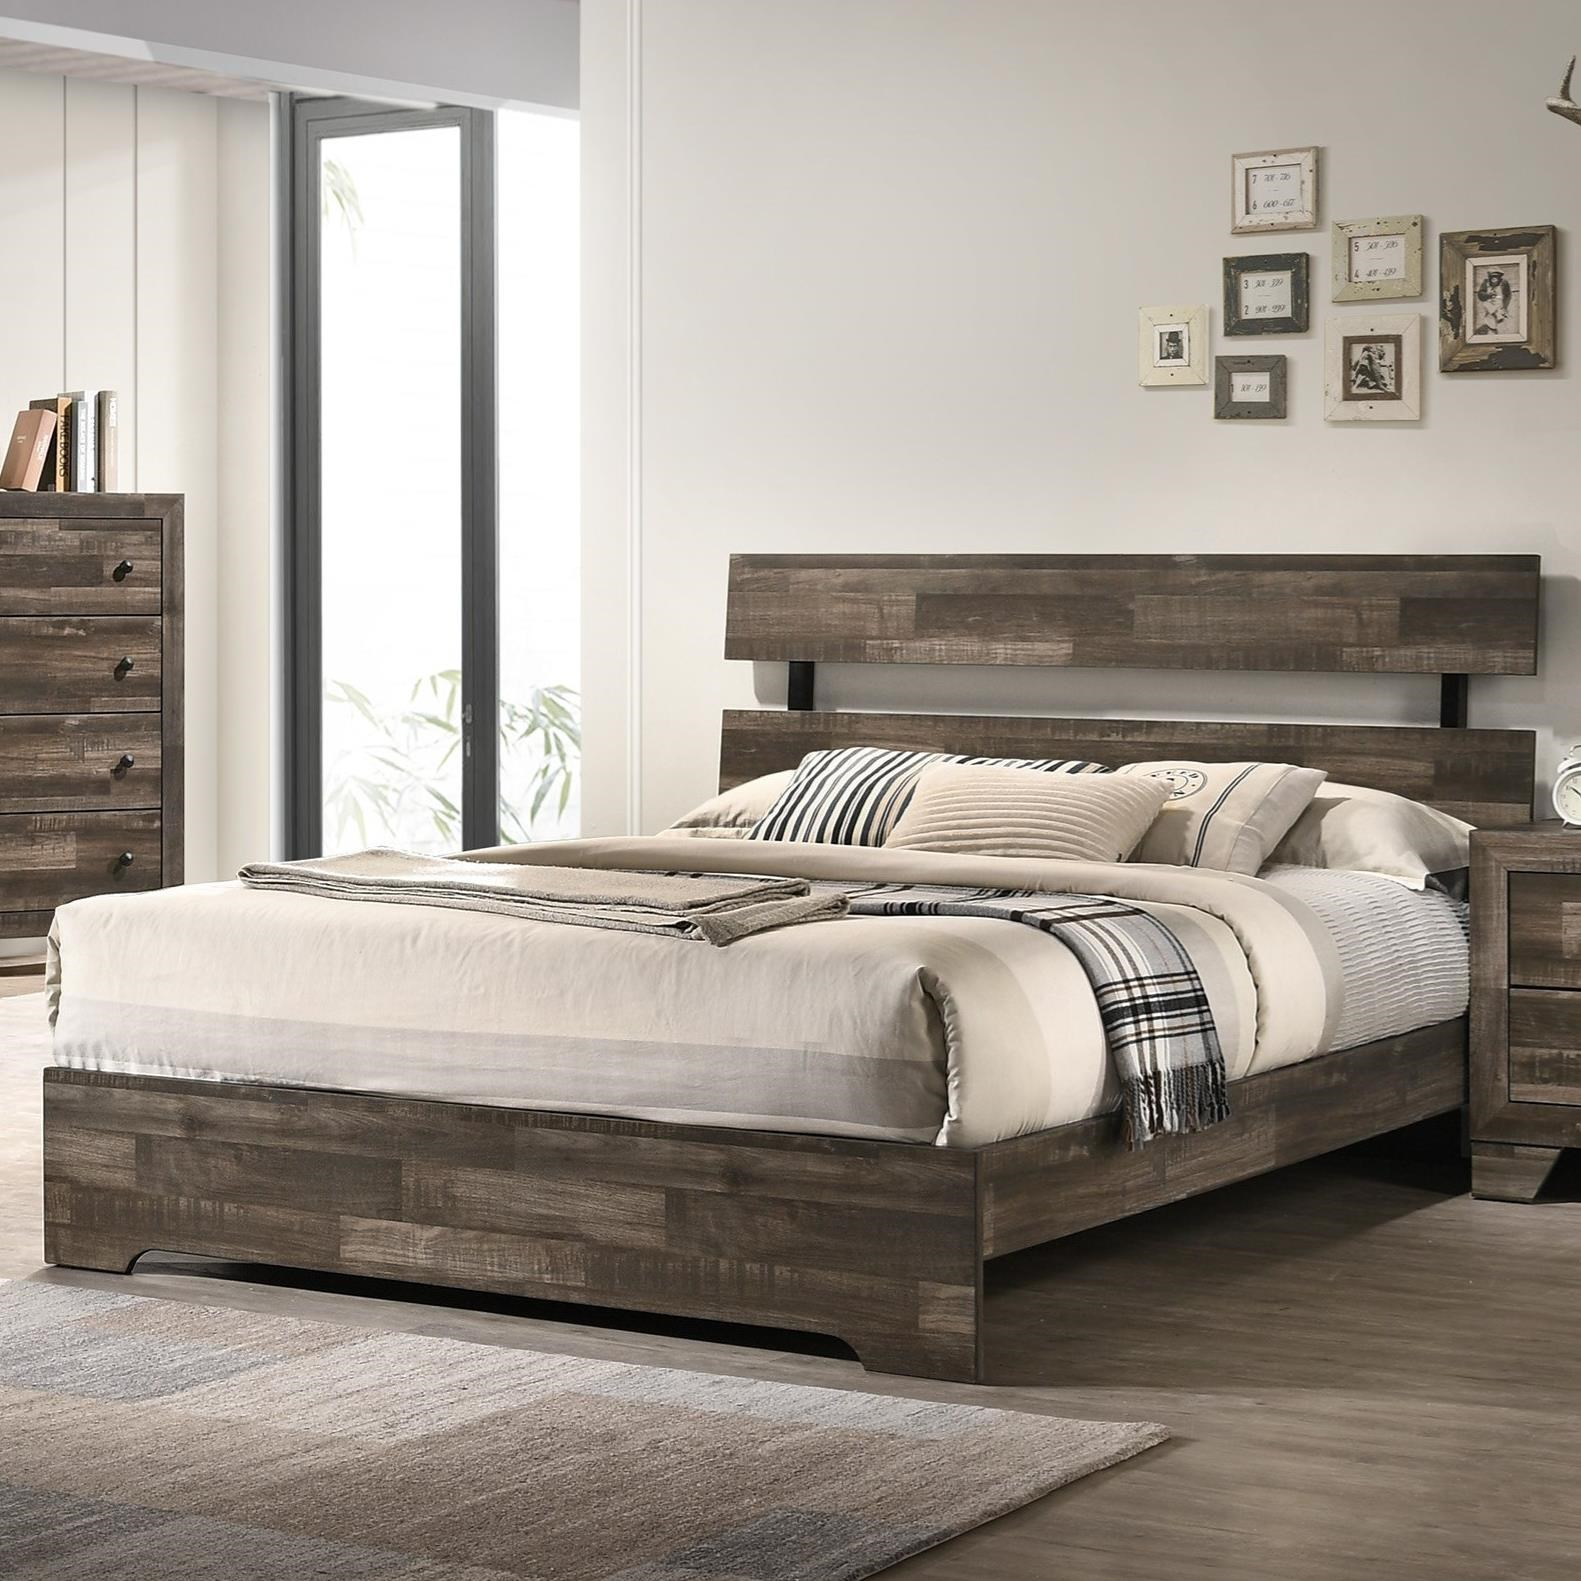 Atticus Twin Bed by Crown Mark at Northeast Factory Direct